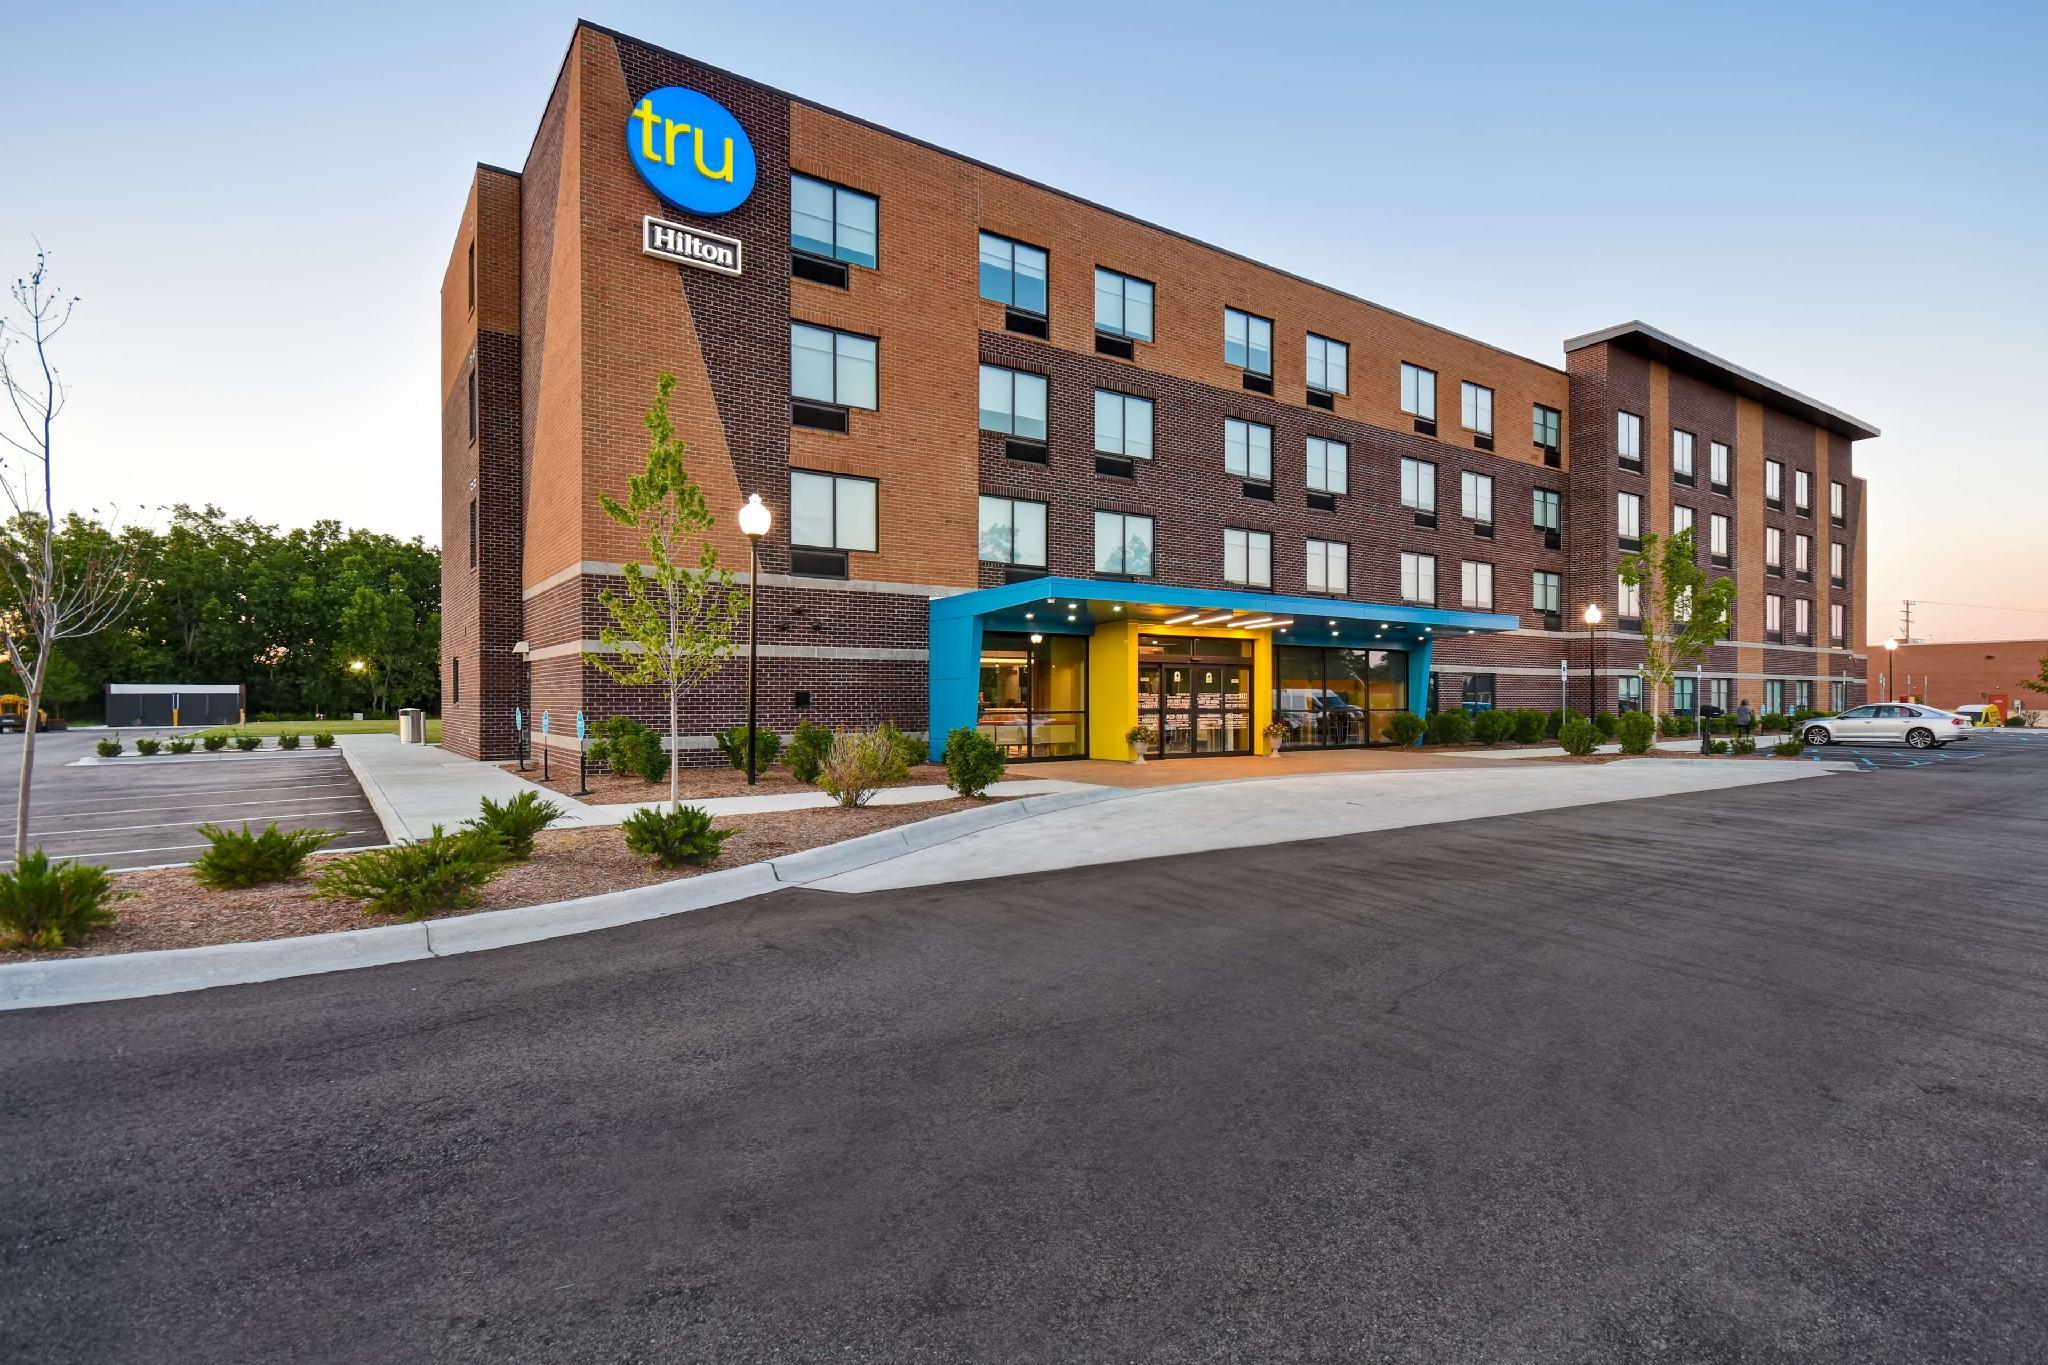 Tru by Hilton Sterling Heights Detroit, Macomb